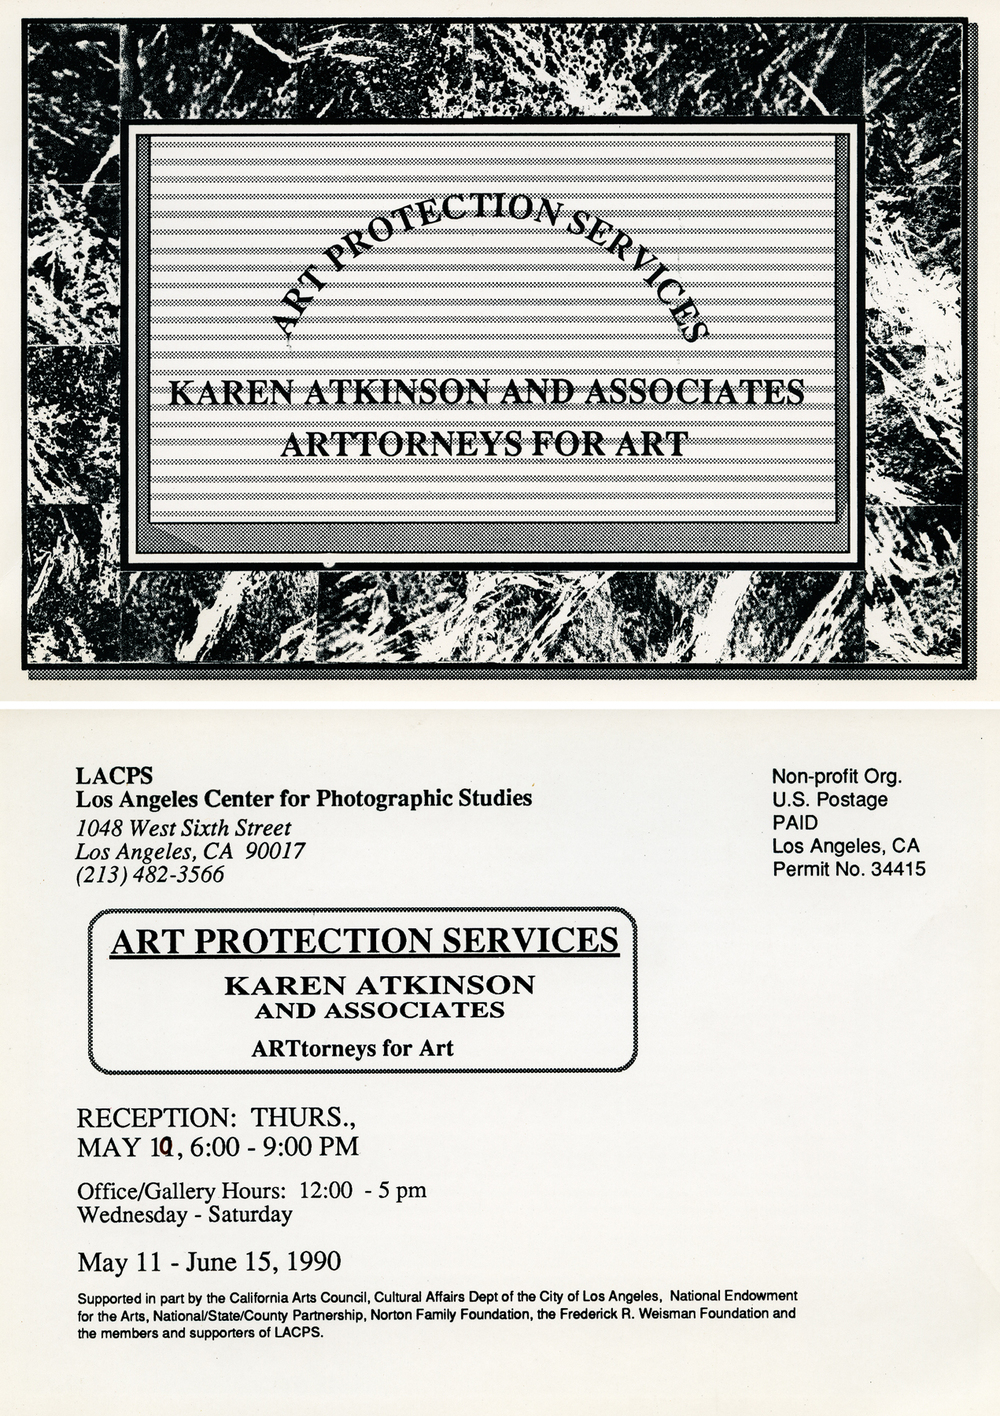 ART PROTECTION SERVICES: Karen Atkinson and Associates, ARTtorneys At Work. Exhibition Invite.